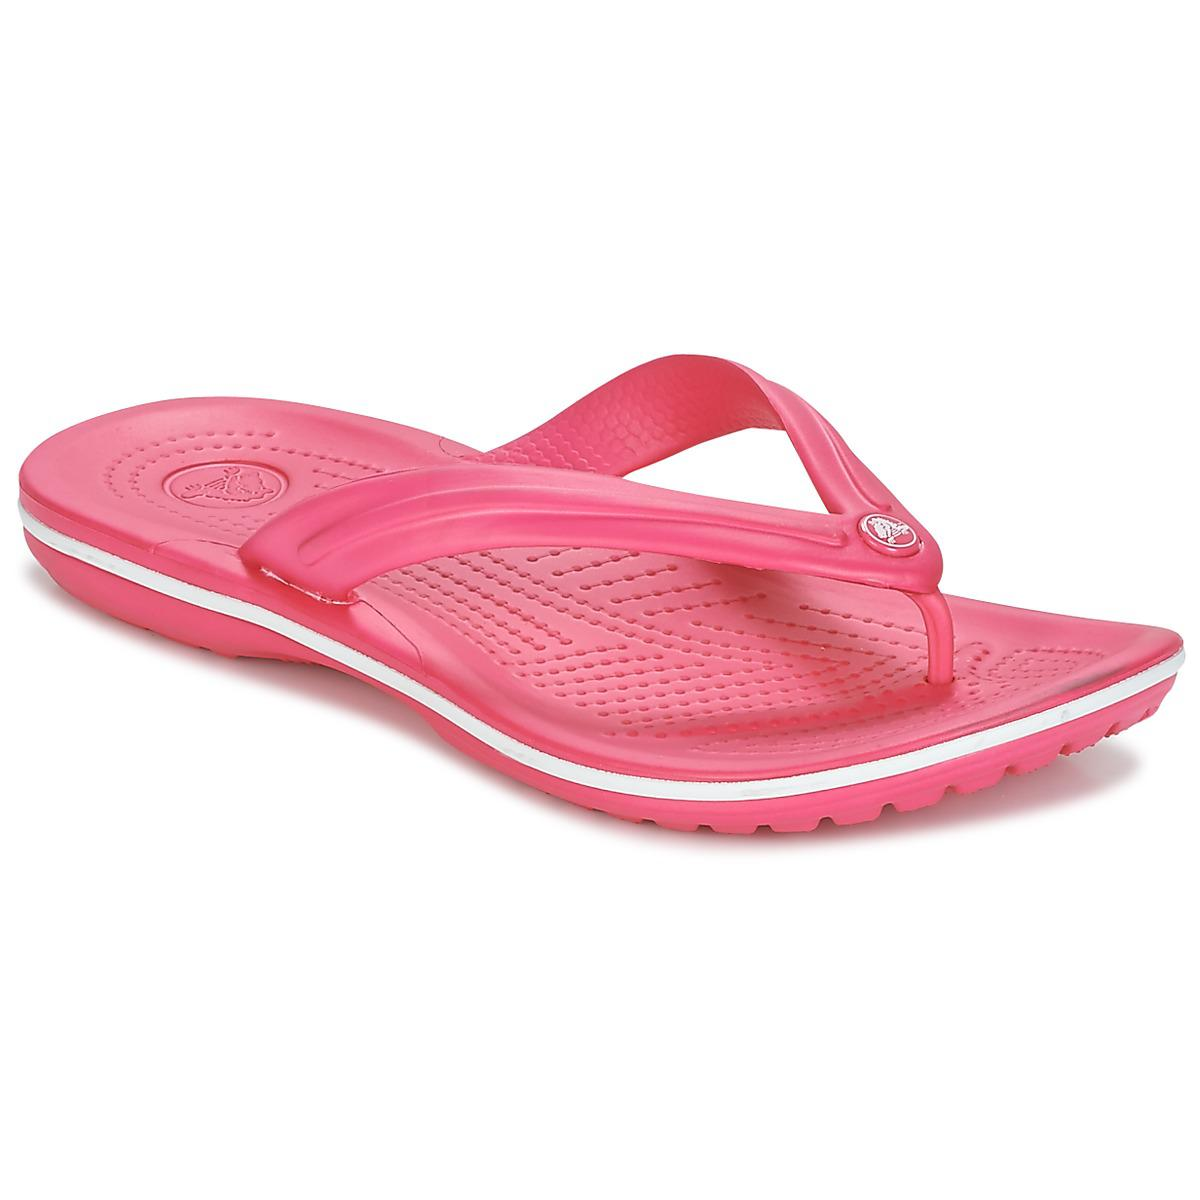 6c076c326 Crocs™ Crocband Flip Women s Flip Flops   Sandals (shoes) In Pink in ...